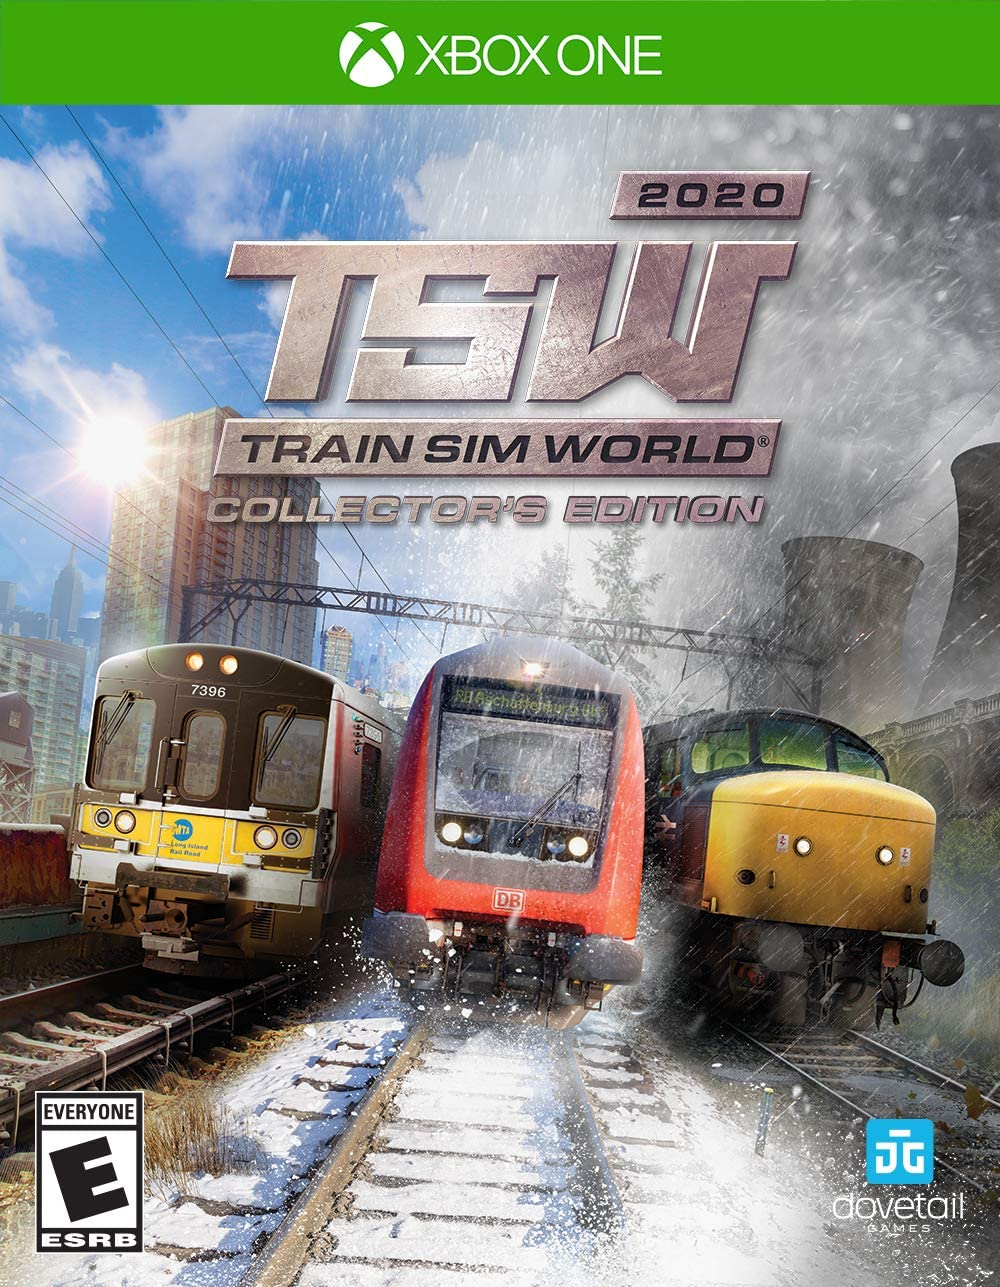 Xbox Free Games November 2020.Amazon Com Train Sim World 2020 Collector S Edition Xb1